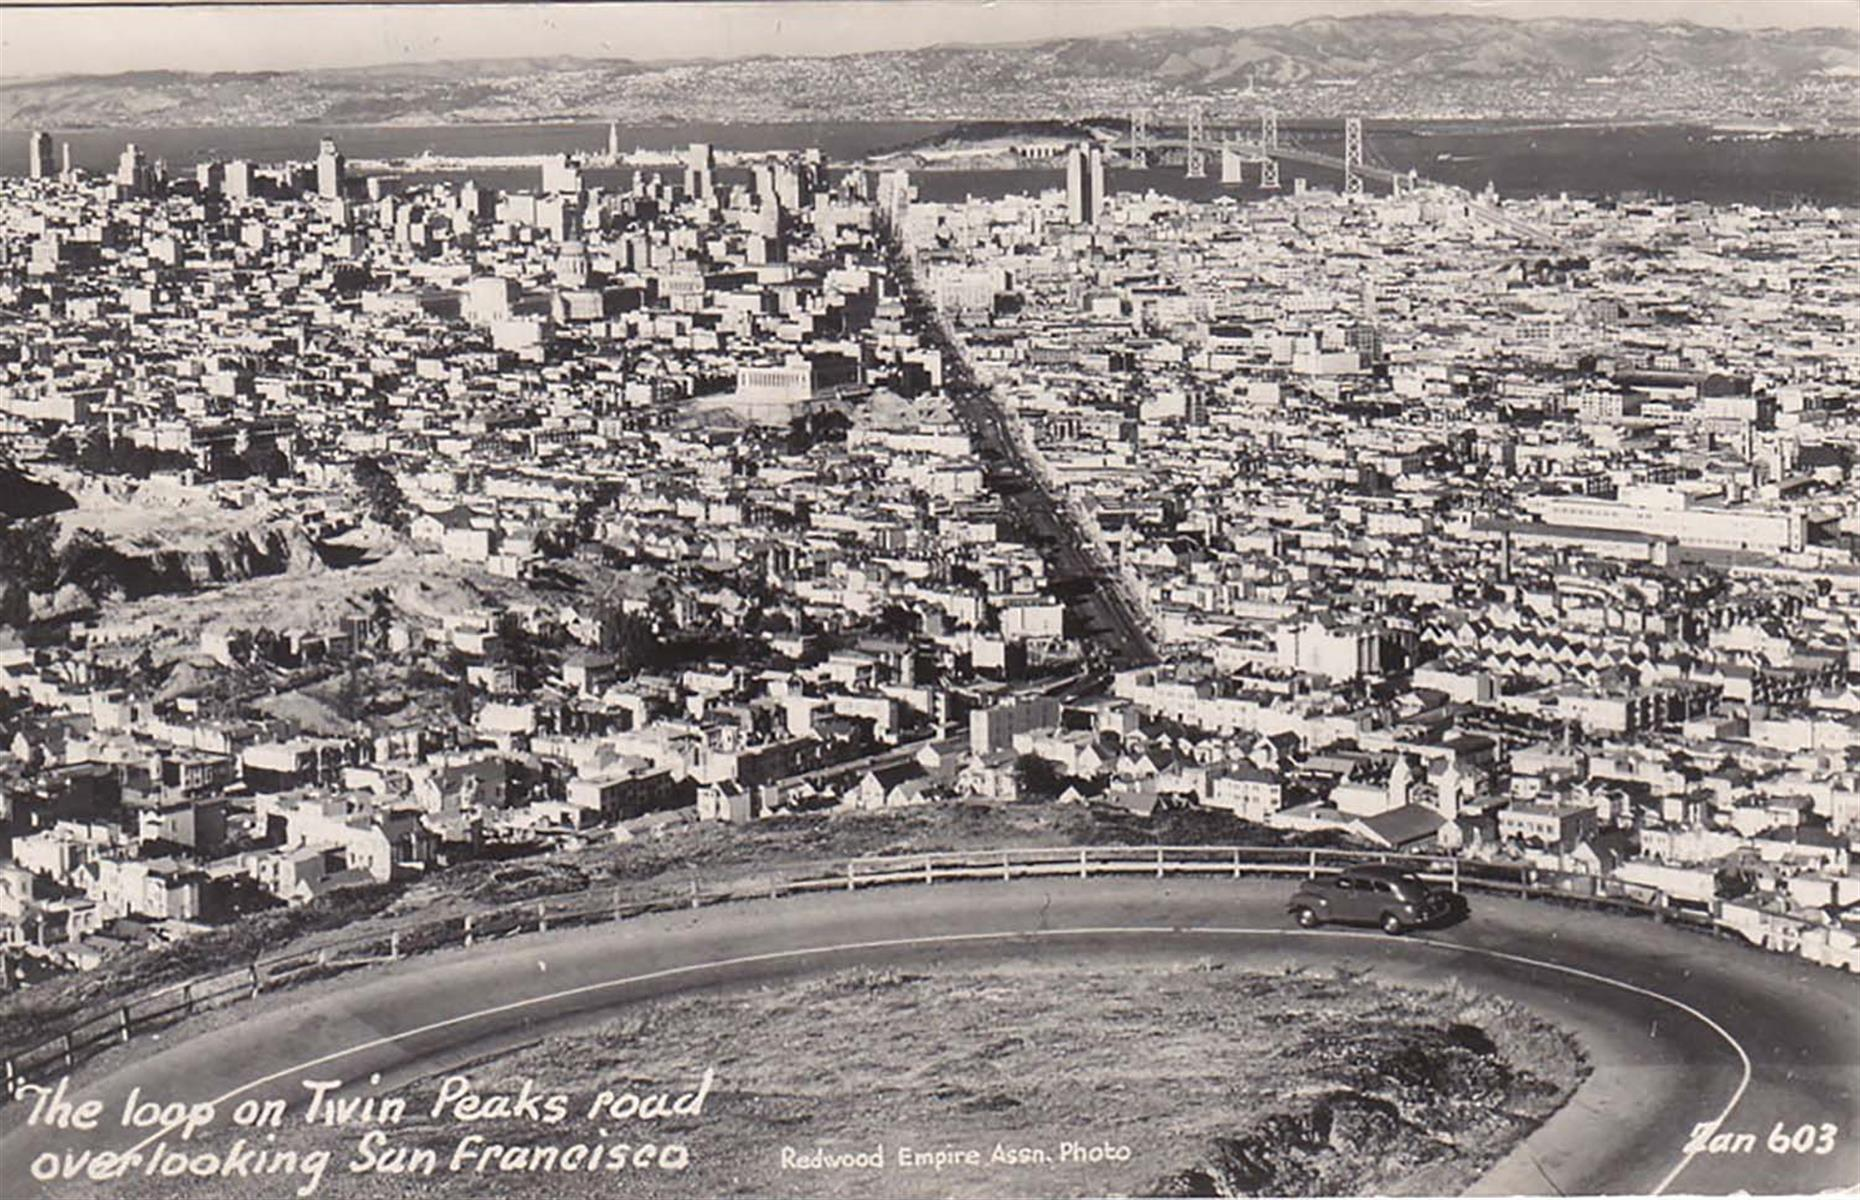 Slide 8 of 27: Captured from Twin Peaks in 1947, the San Francisco cityscape is almost unrecognizable, if not for the Oakland Bay Bridge, finished just around 10 years prior to this photo. While some high-rises had already appeared in the city's Financial District, much of the city changed in the coming decades, as the urban planning projects of the 1950s and the 1960s focused on widespread redevelopment of neighborhoods and the construction of new freeways.